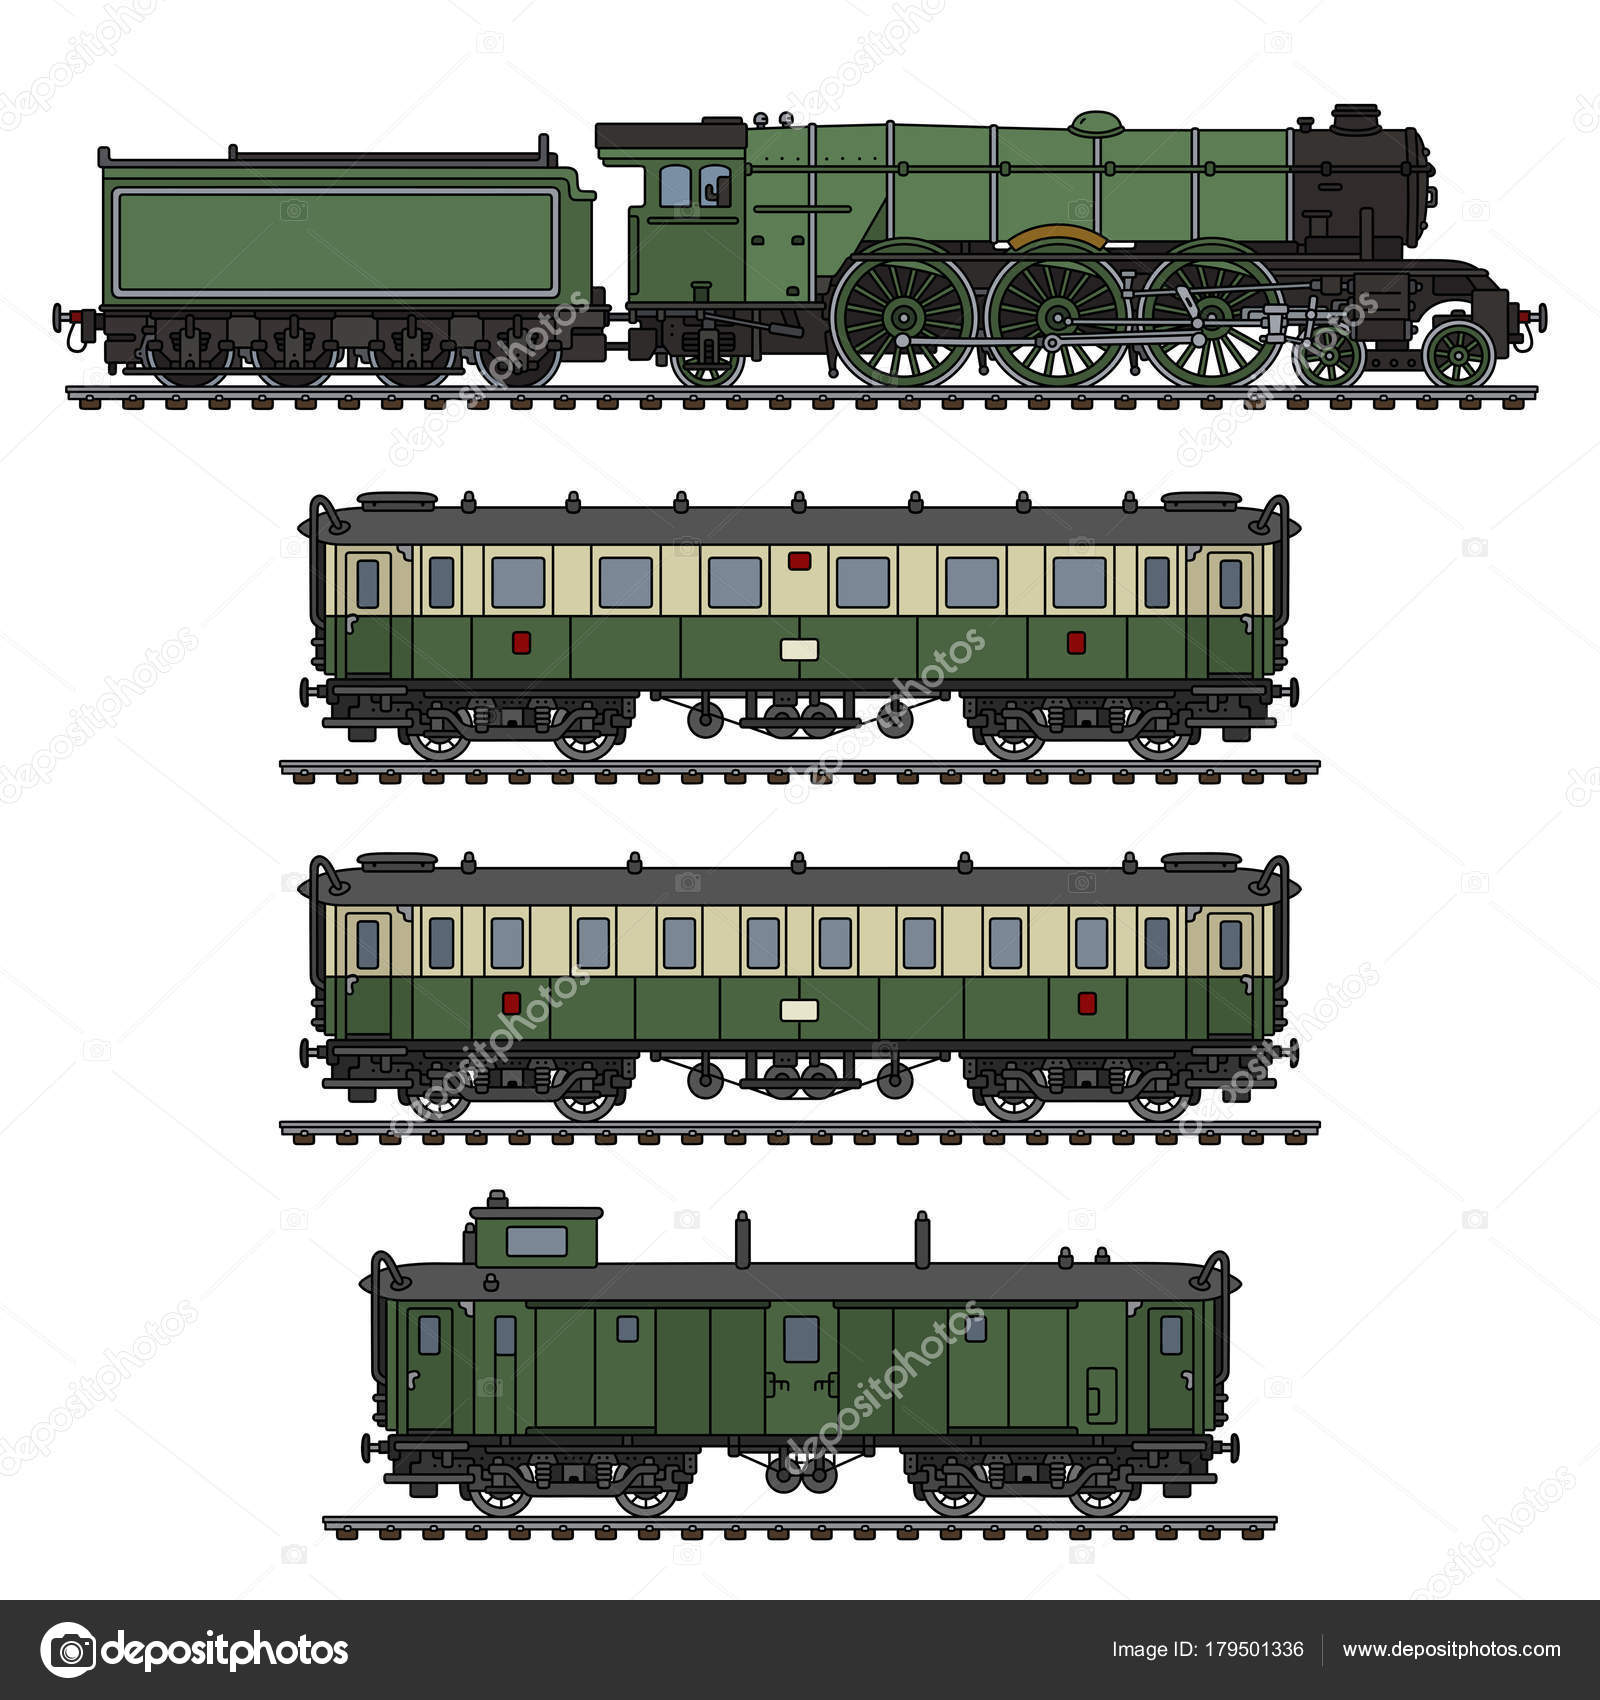 Passenger Train Drawing at GetDrawings.com | Free for personal use ...